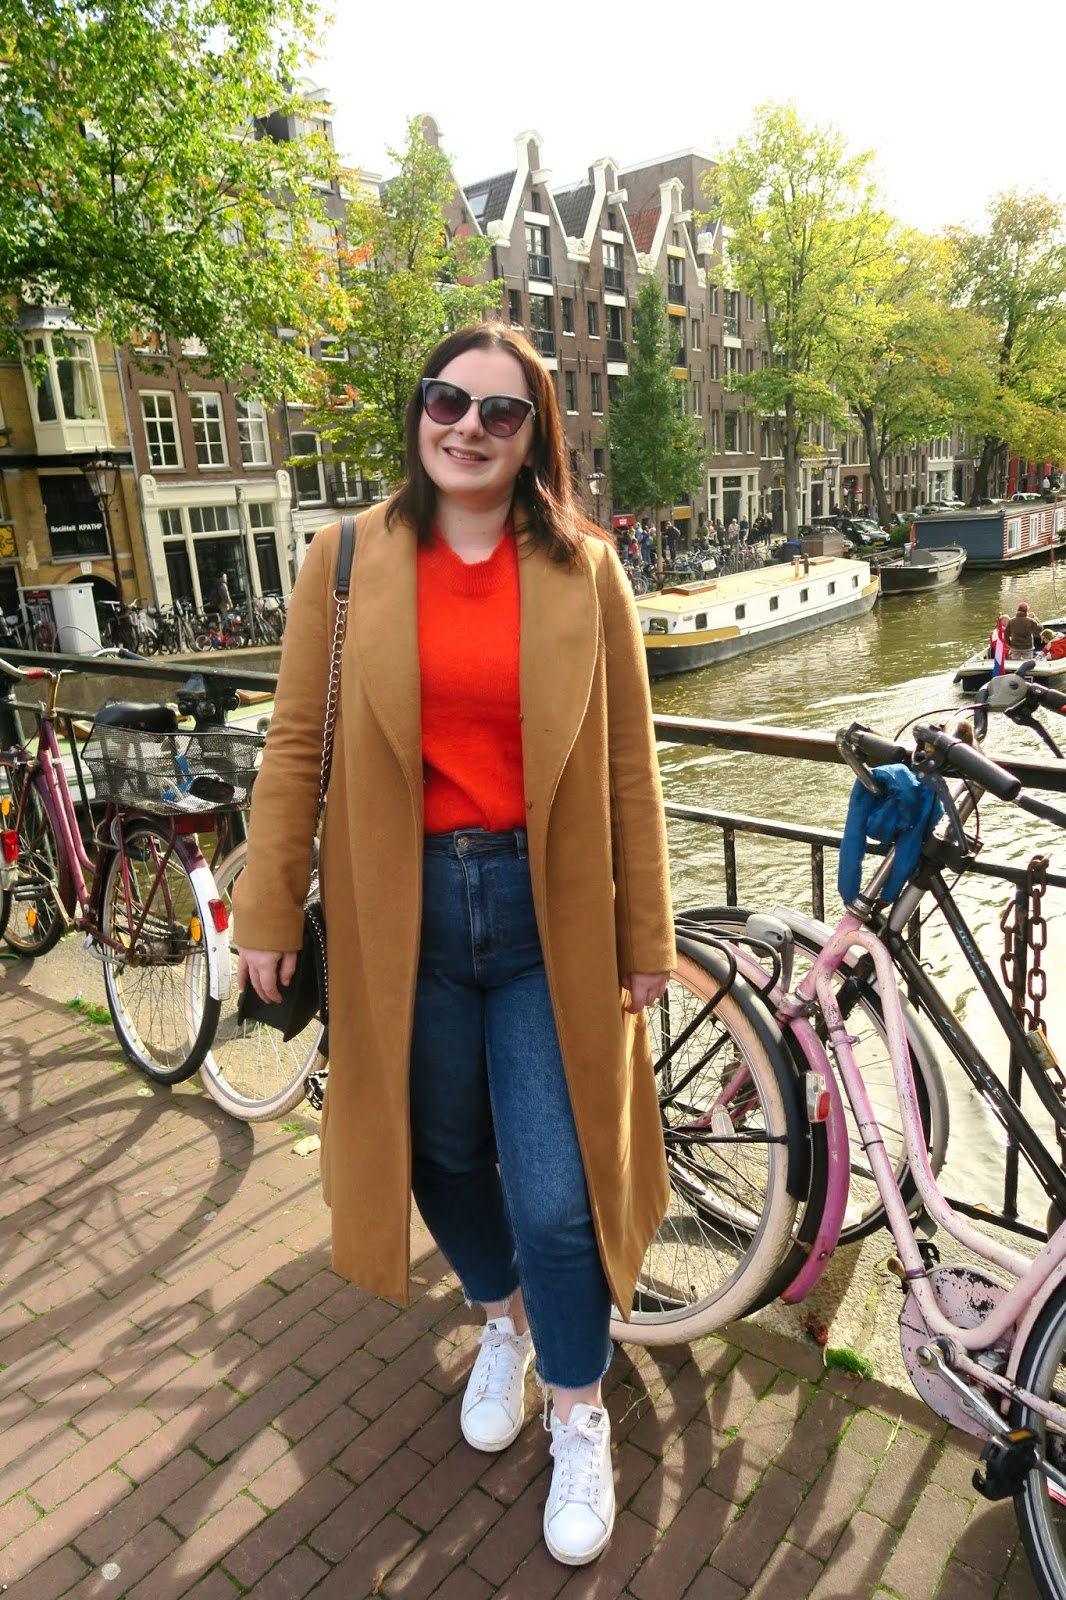 4 Days in Amsterdam- pose on Amsterdam canal bridge